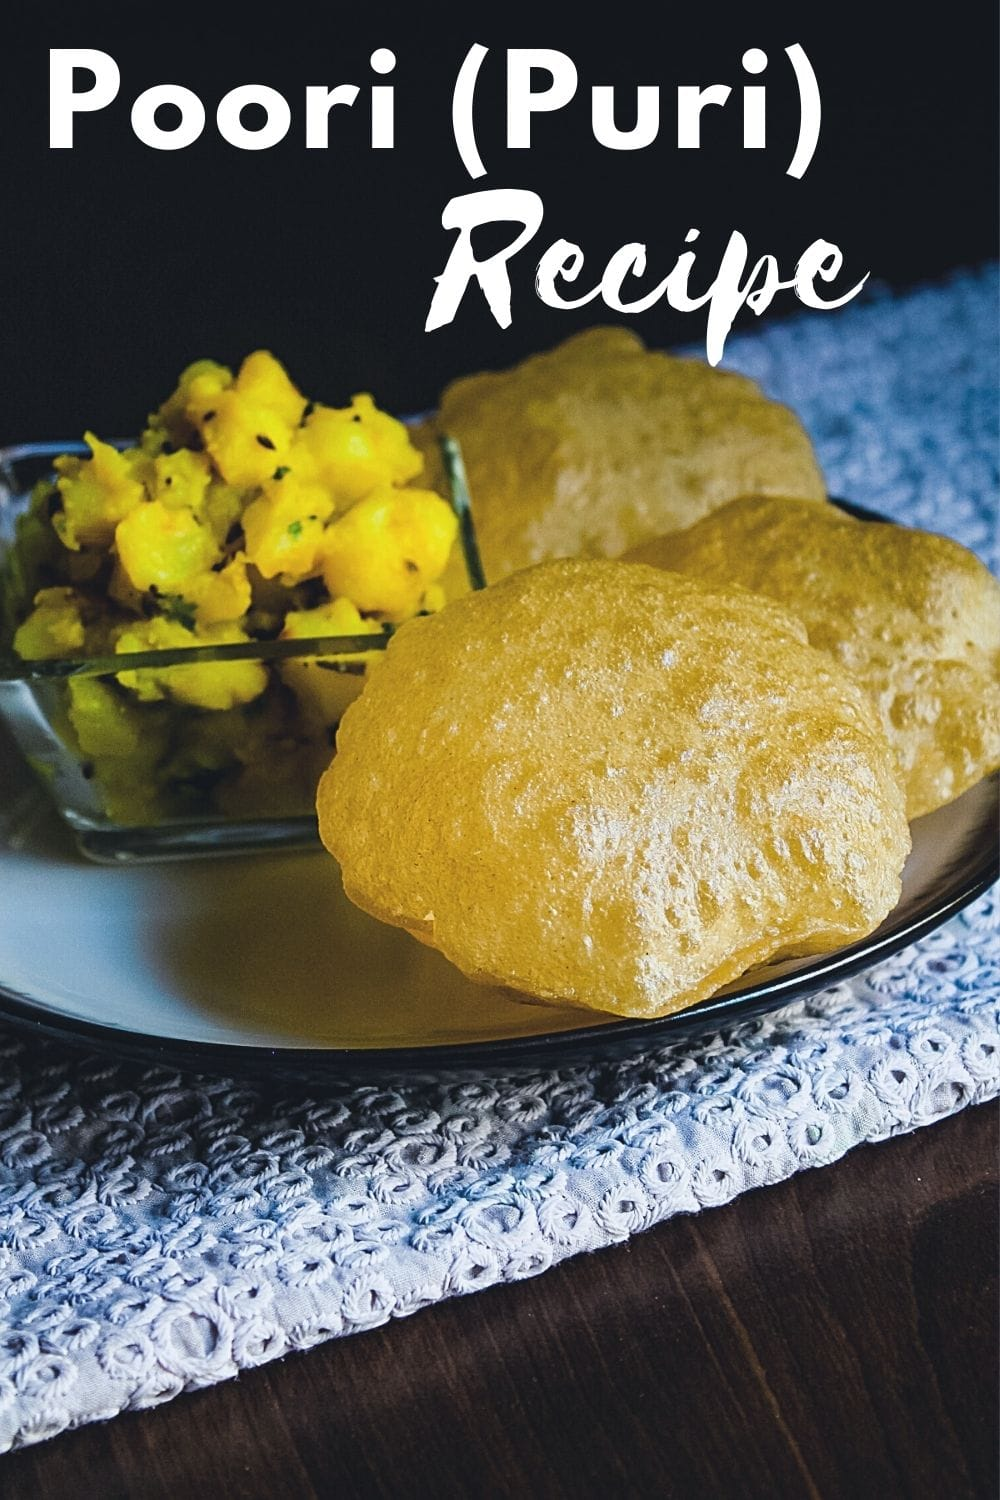 3 poori served with batata bhaji with text on the image for pinterest.